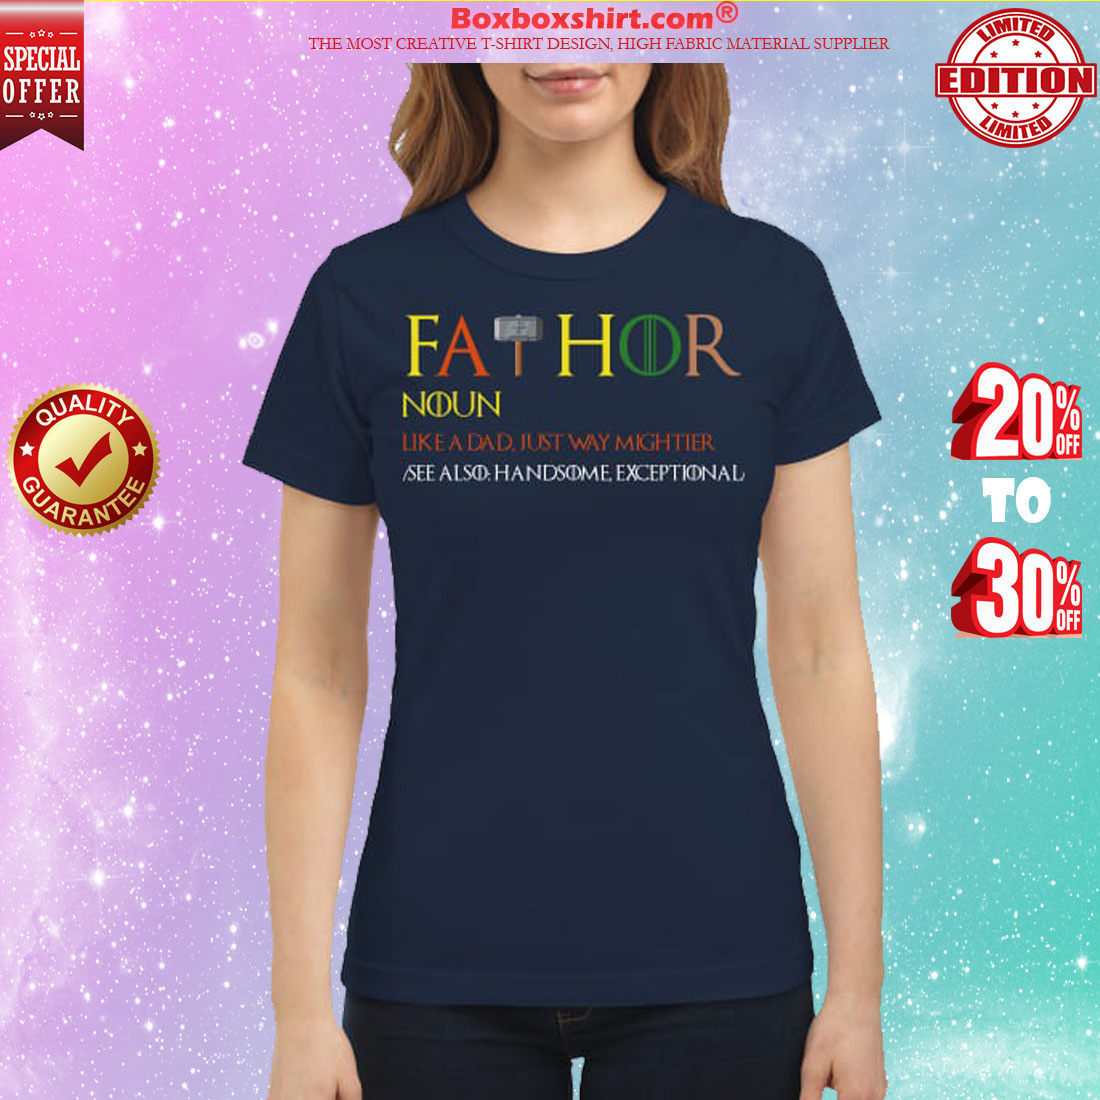 Game of Thrones fathor like a dad just way mightier classic shirt